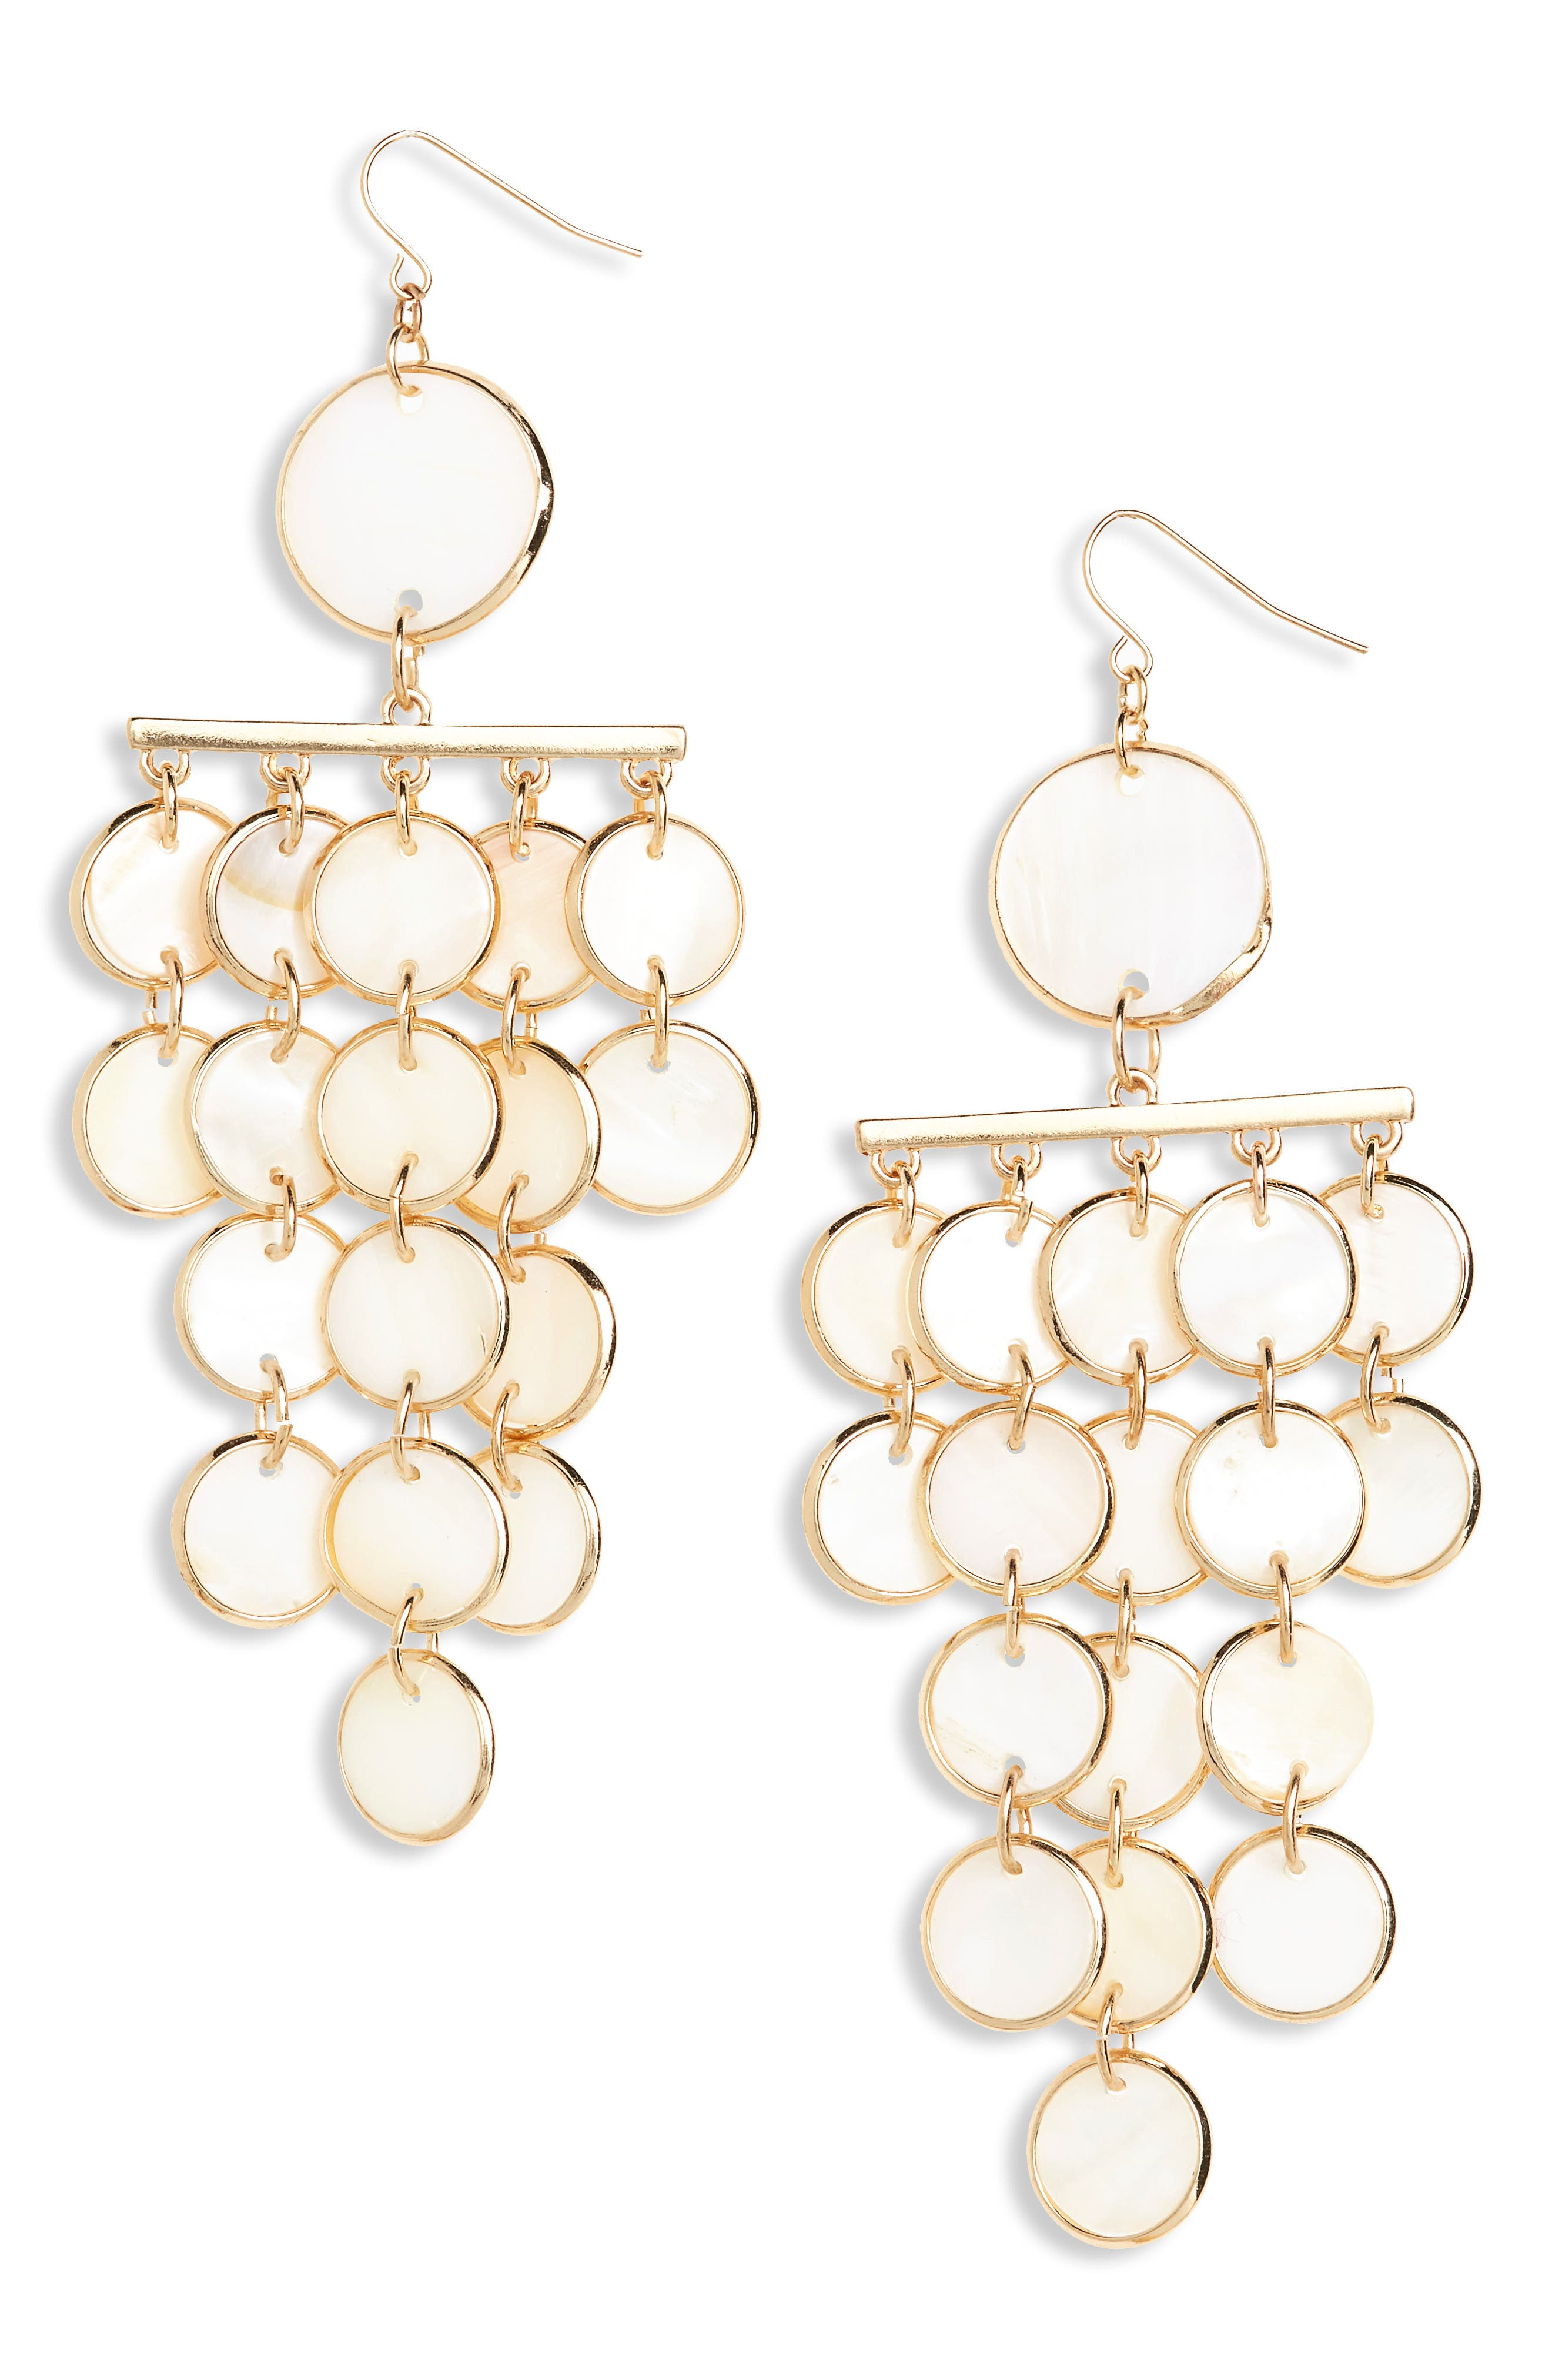 Mother of Pearl Chandelier Earrings,                             Main thumbnail 1, color,